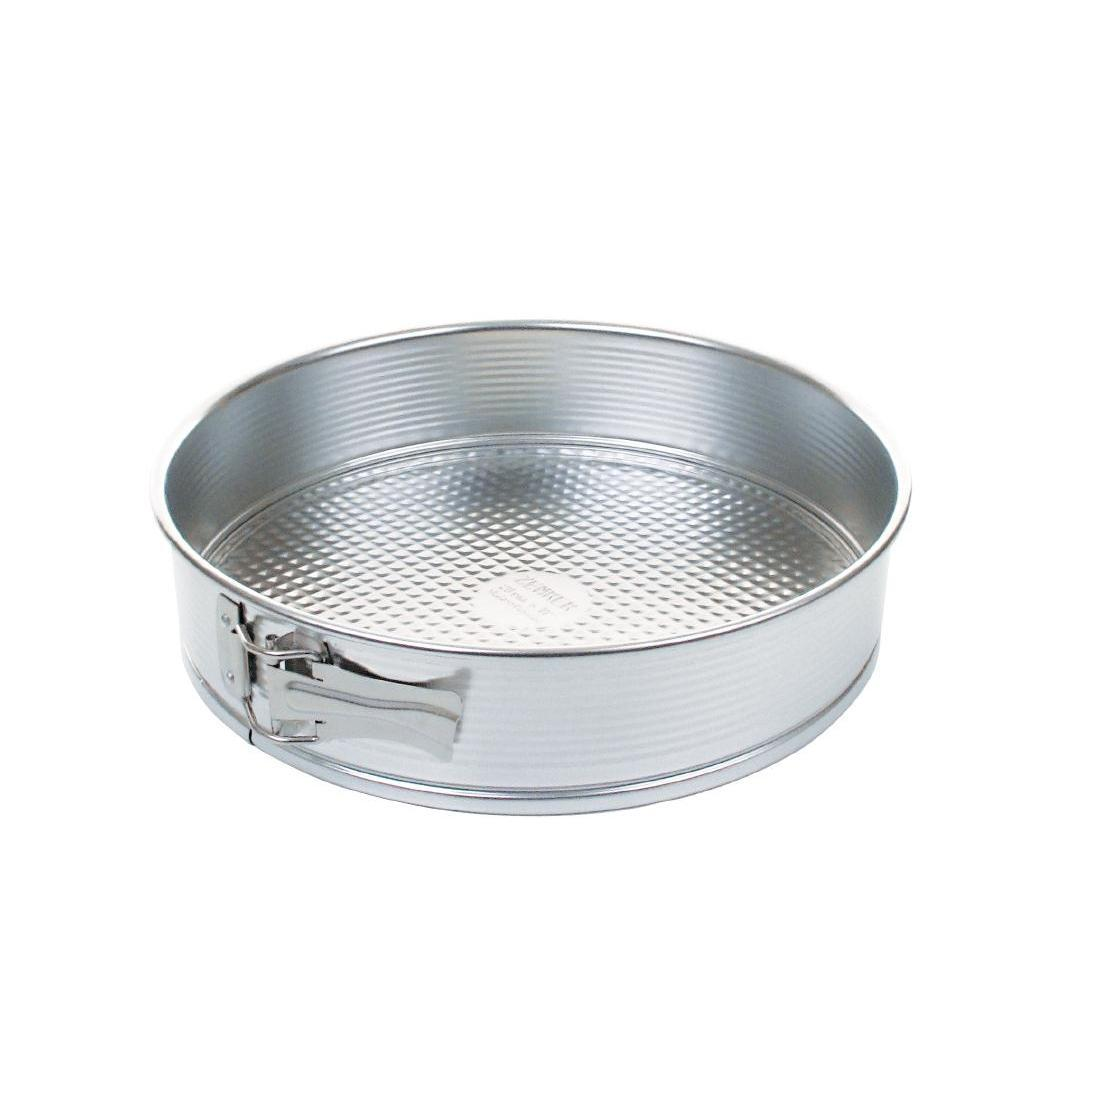 Vogue Spring Form Cake Tin 260mm - Each - E848